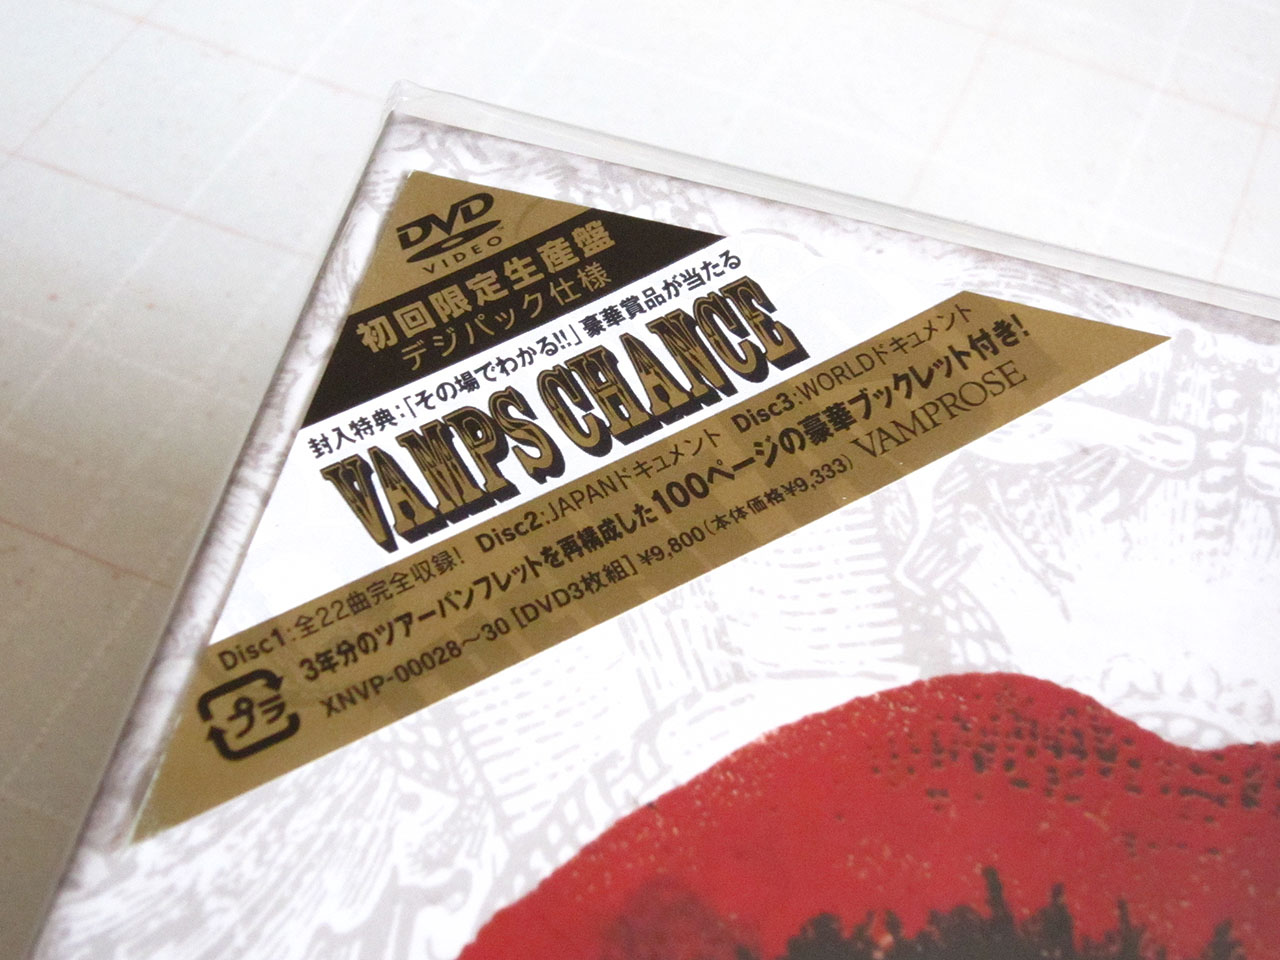 VAMPS LIVE 2010 BEAUTY AND THE...